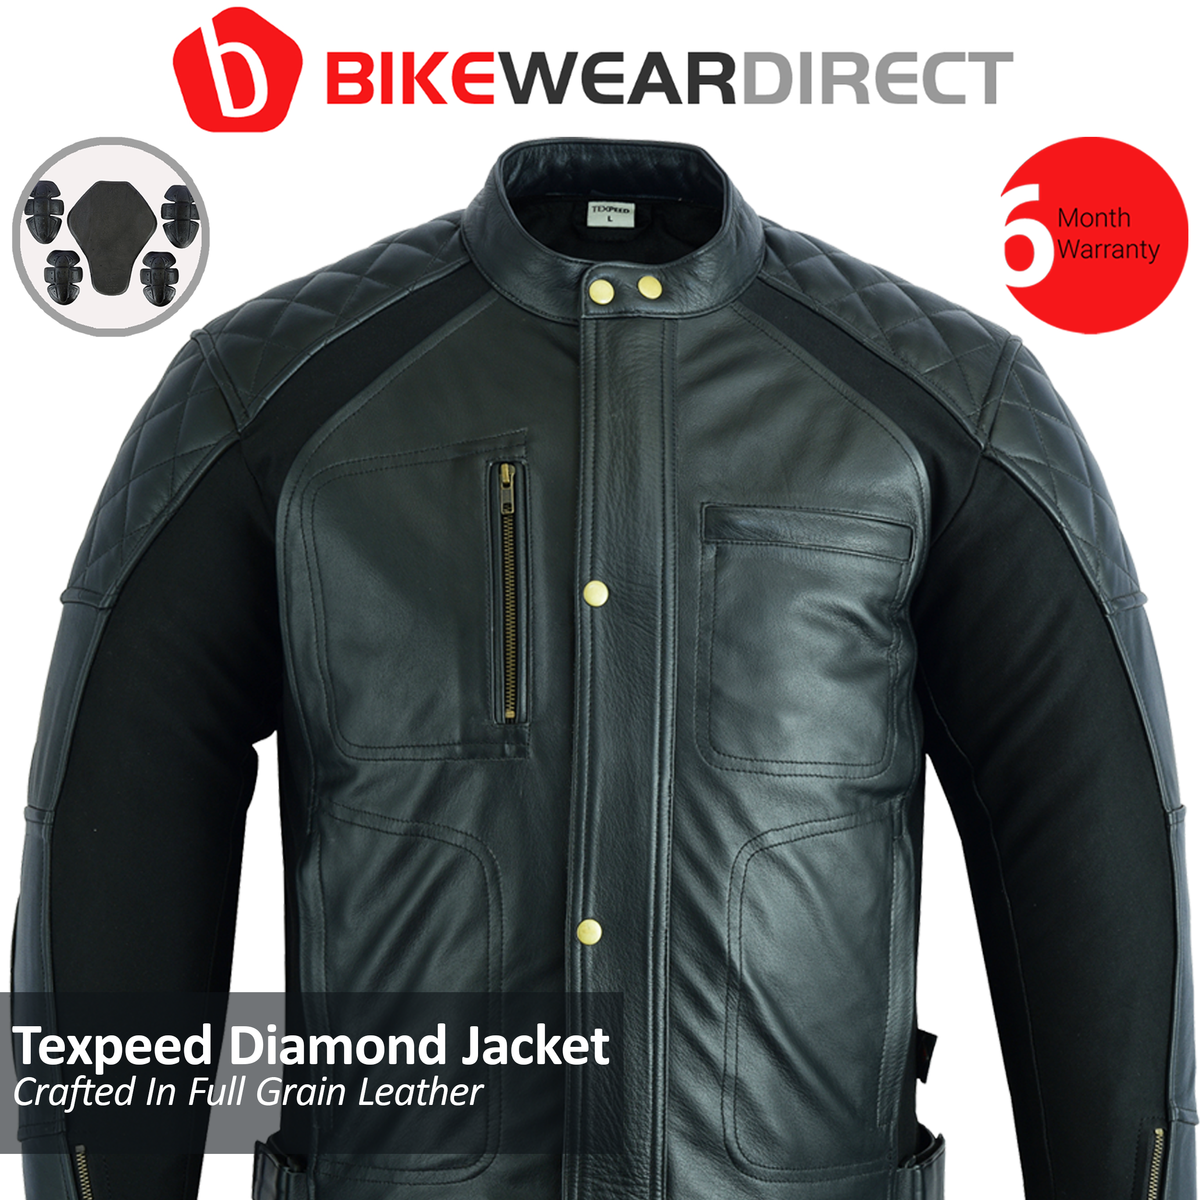 Texpeed DIA Stretch Leather Jacket